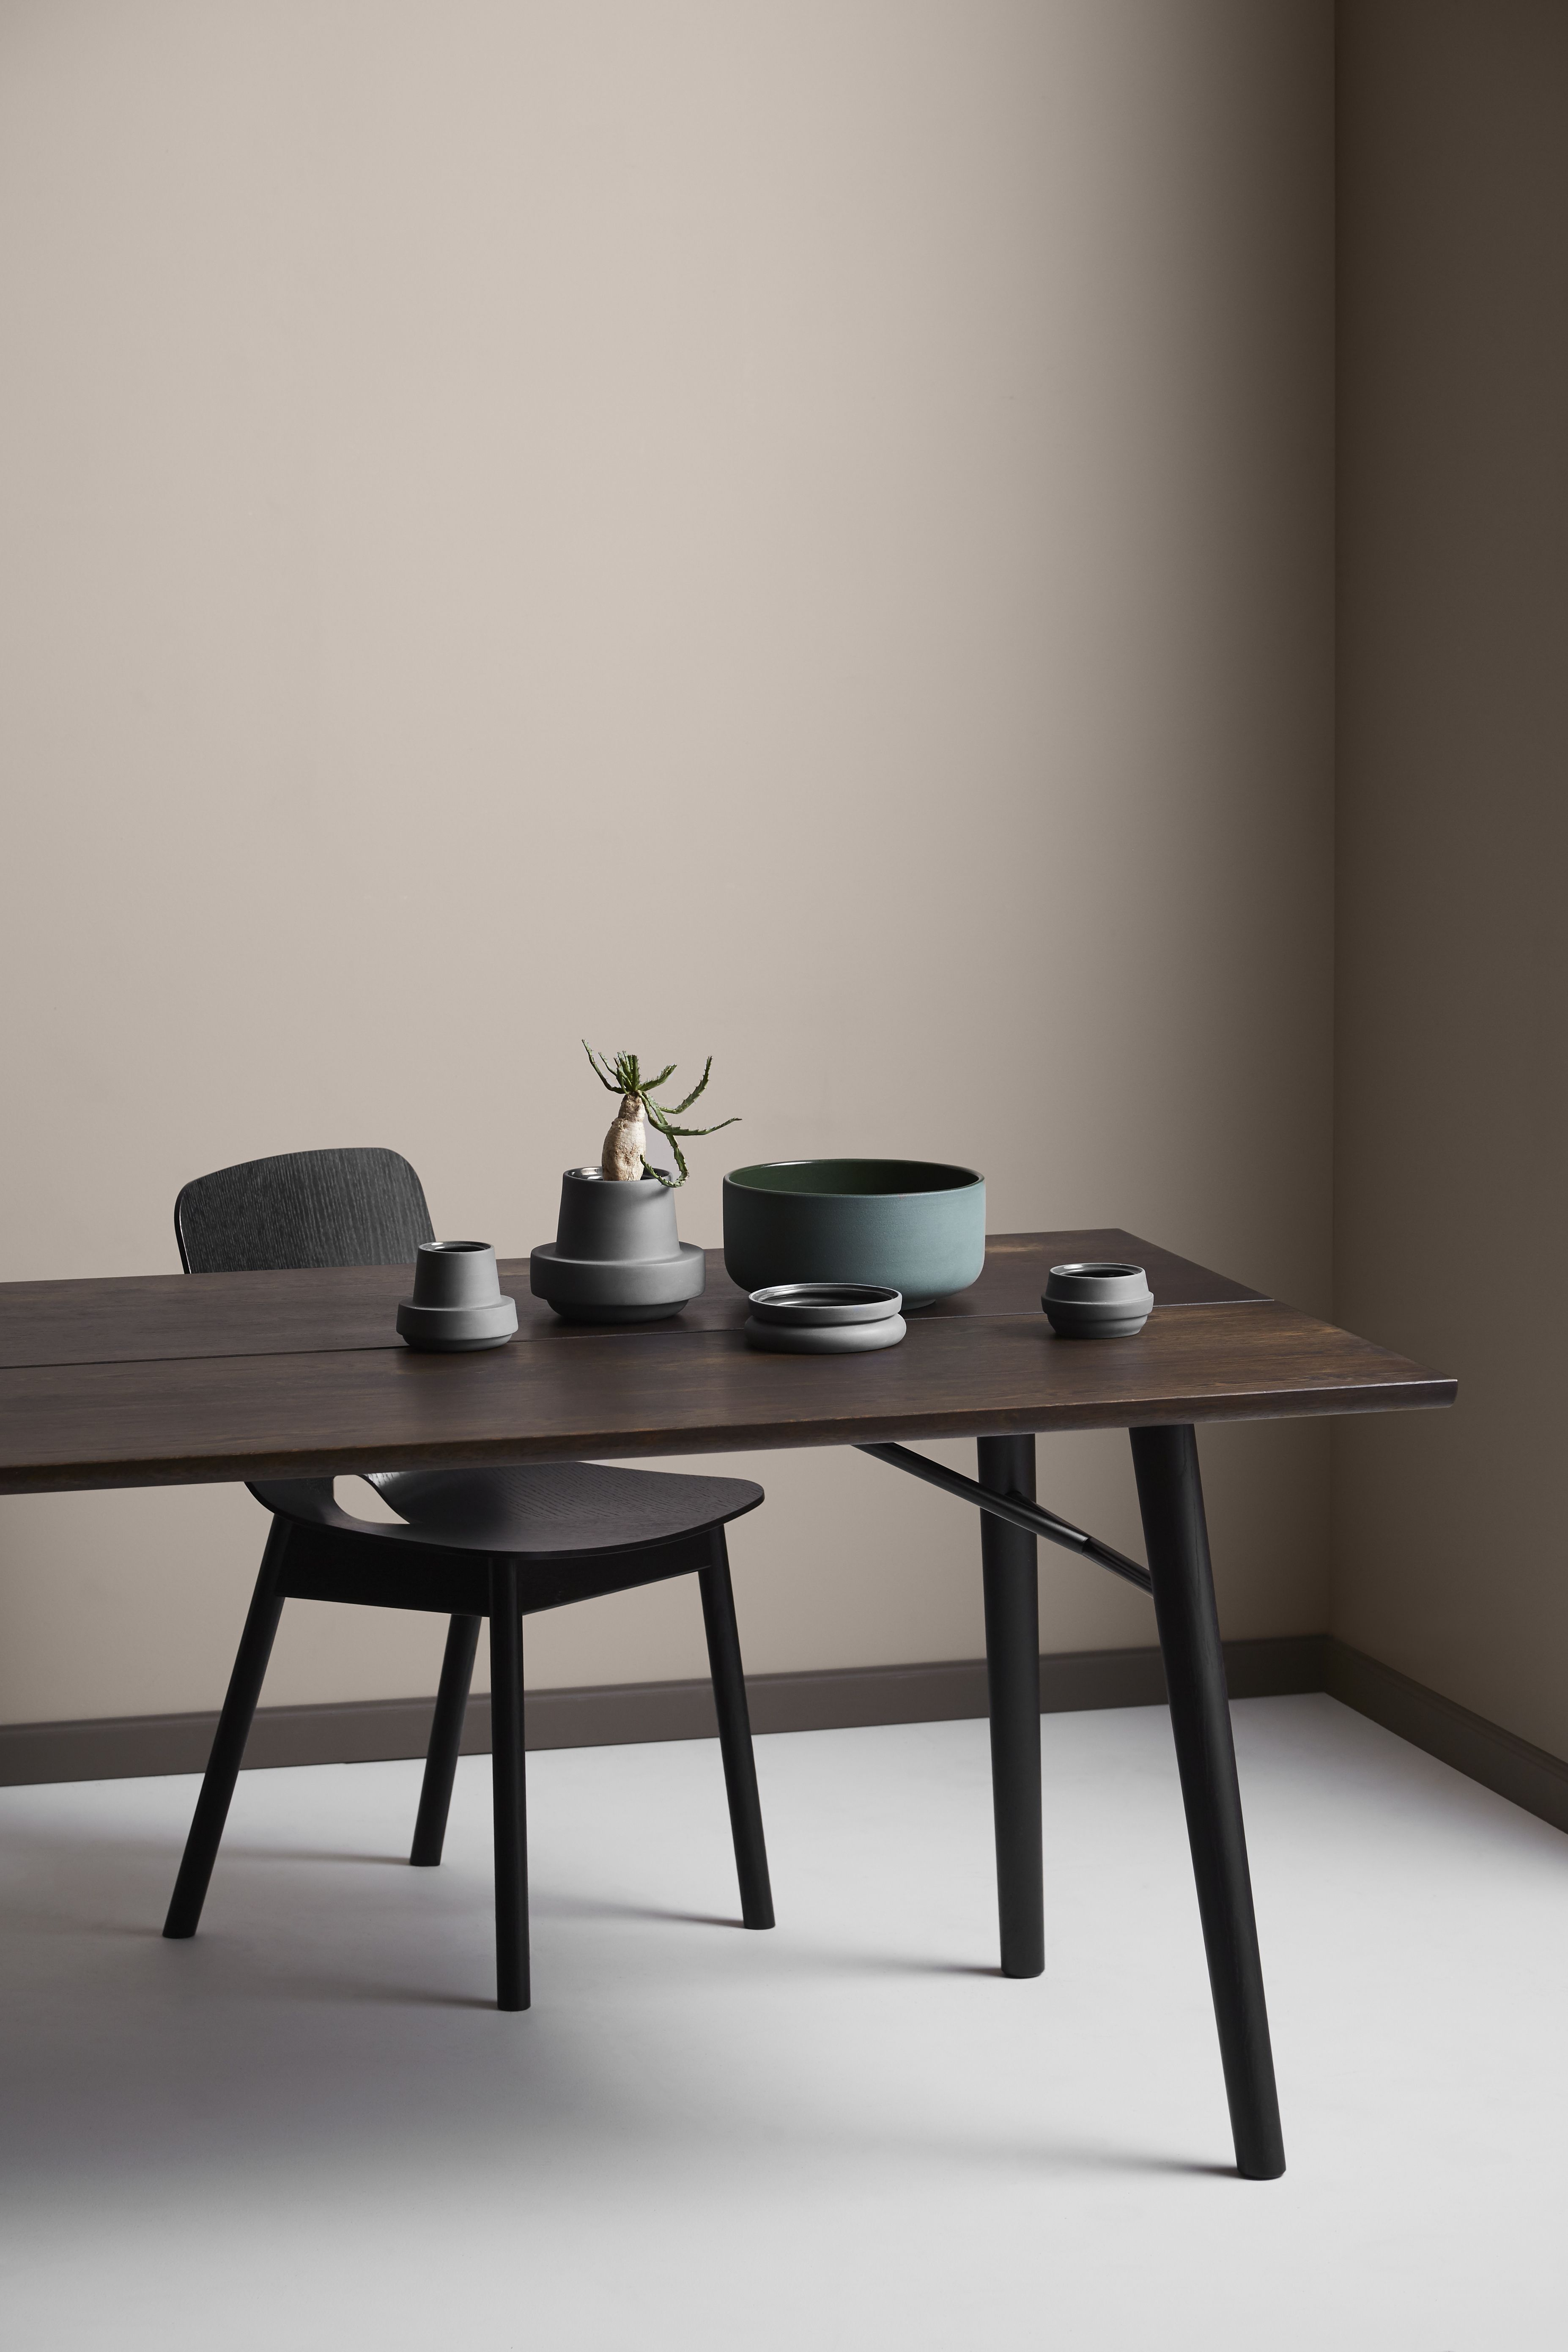 Alley Dining Table By Woud Dining Table Scandinavian Dining Table Modern Dining Table